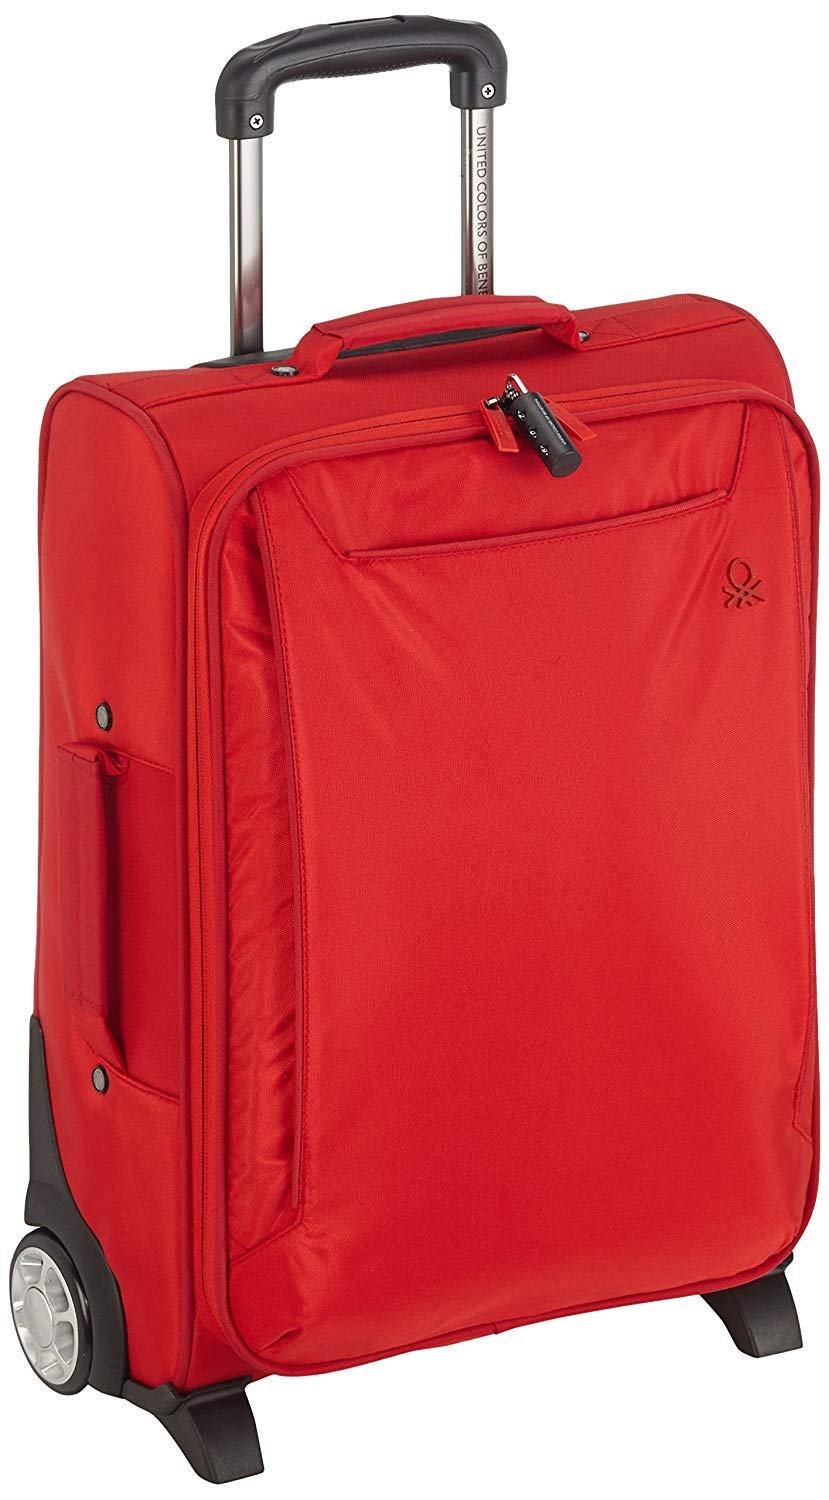 Benetton Rollkoffer ACCOUNT 20_39A73961_RED/DKRED Rot 41 L